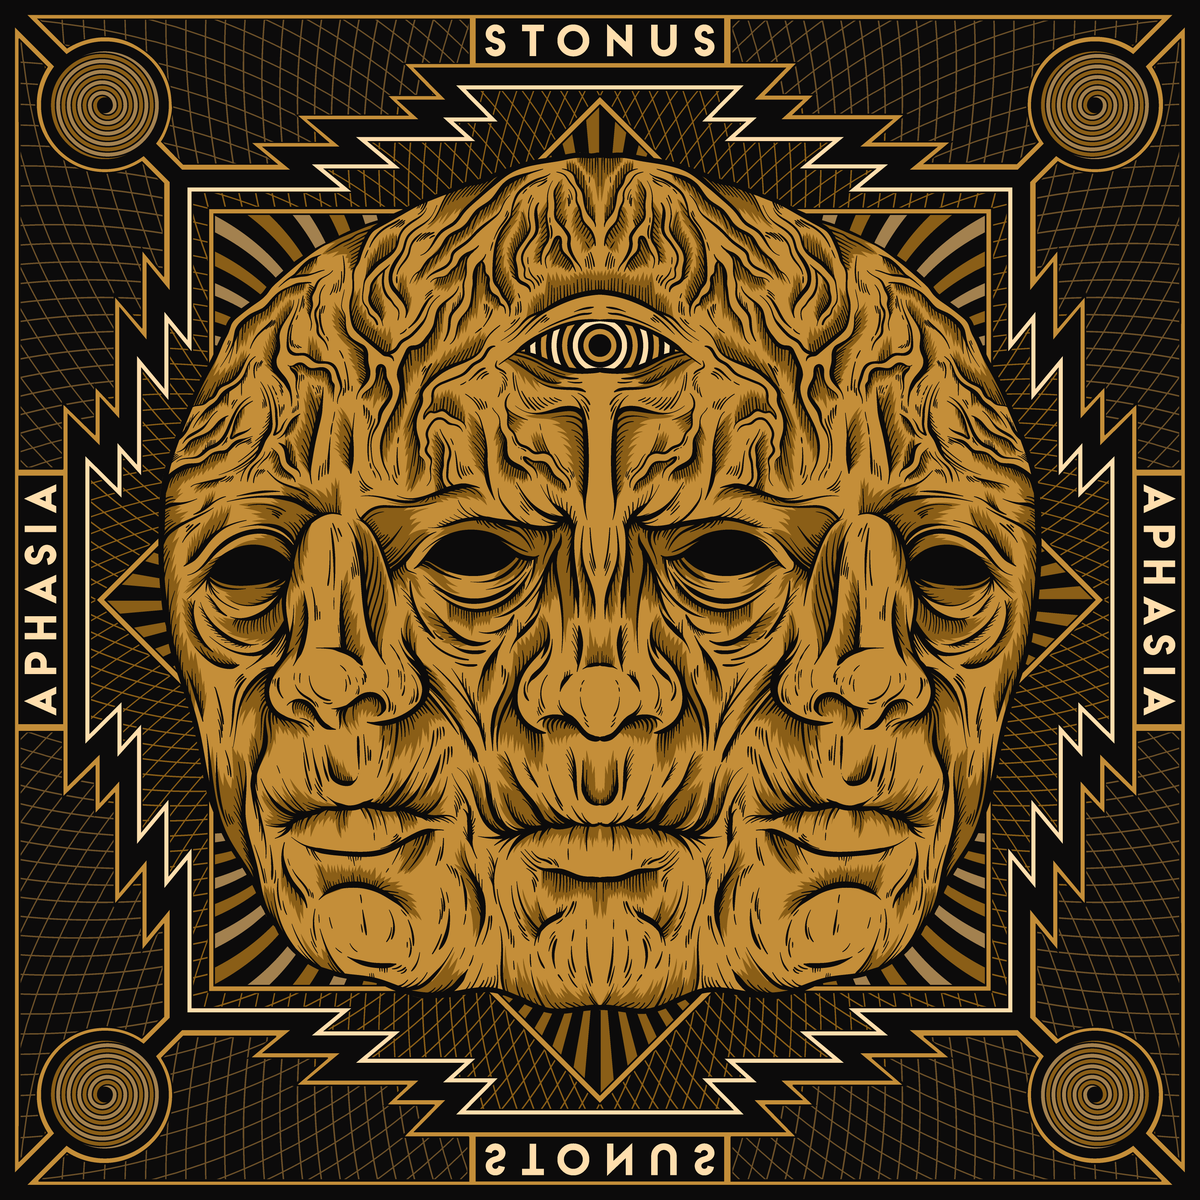 Image of STONUS - APHASIA LTD Gold Vinyl